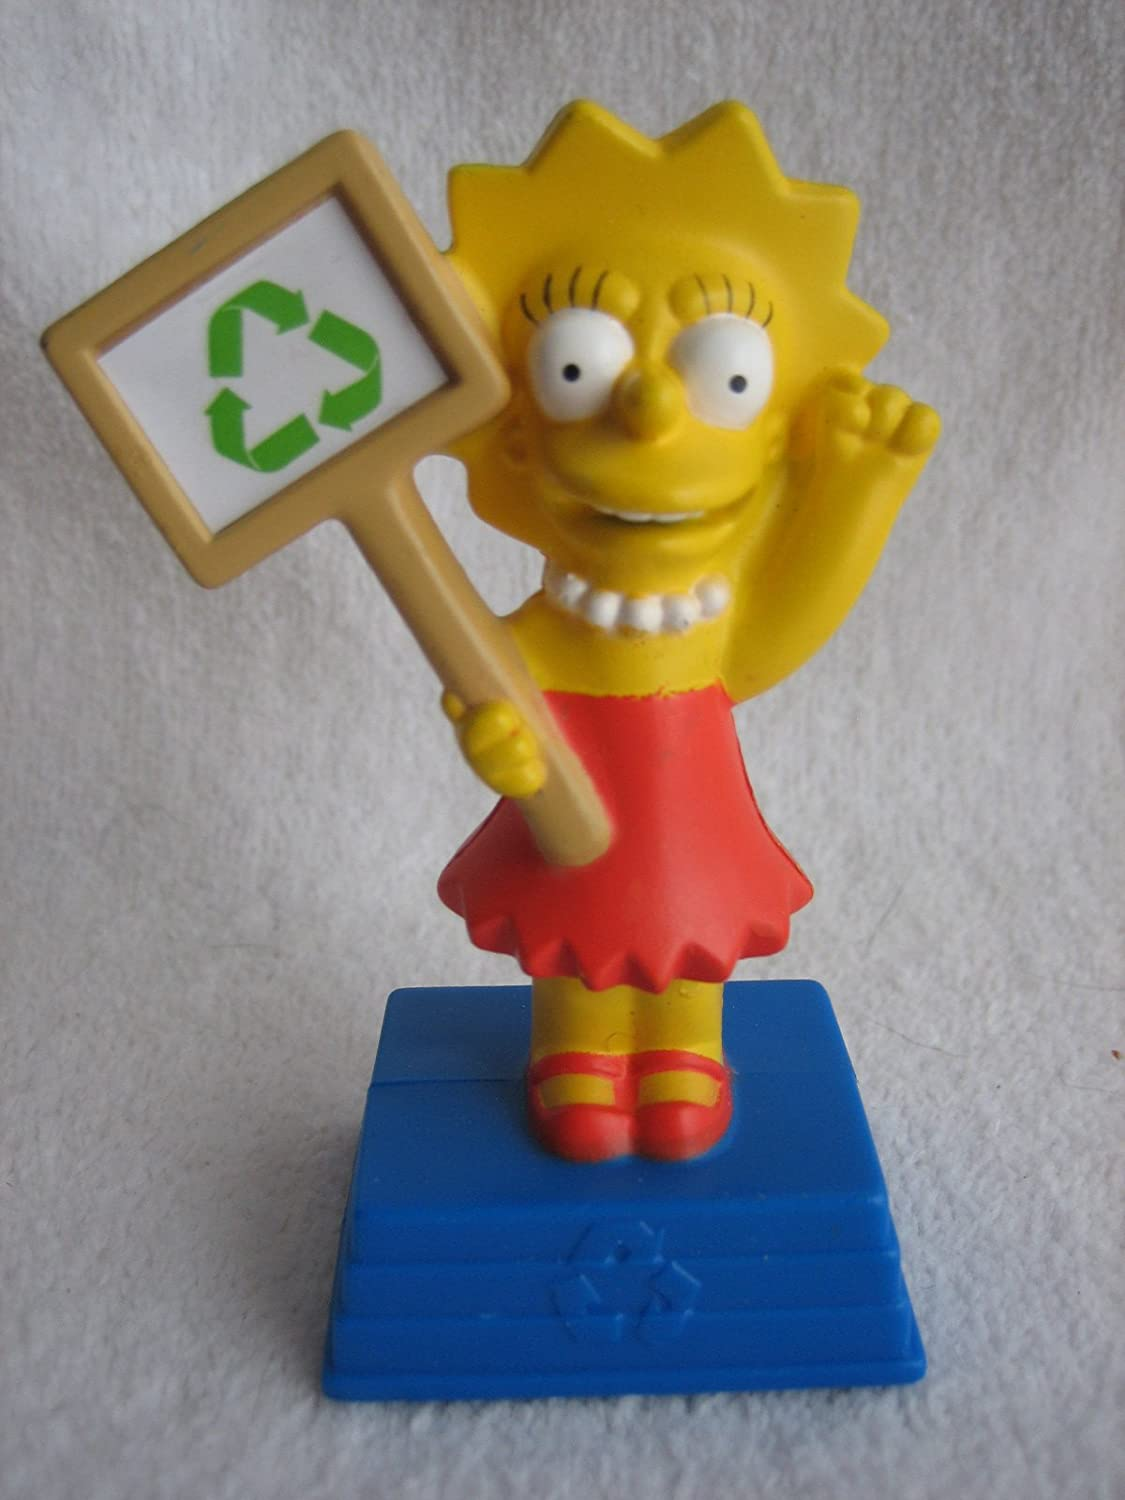 Buy Burger King Simpsons The Movie Lisa 2007 Kids Meal Toy Online At Low Prices In India Amazon In